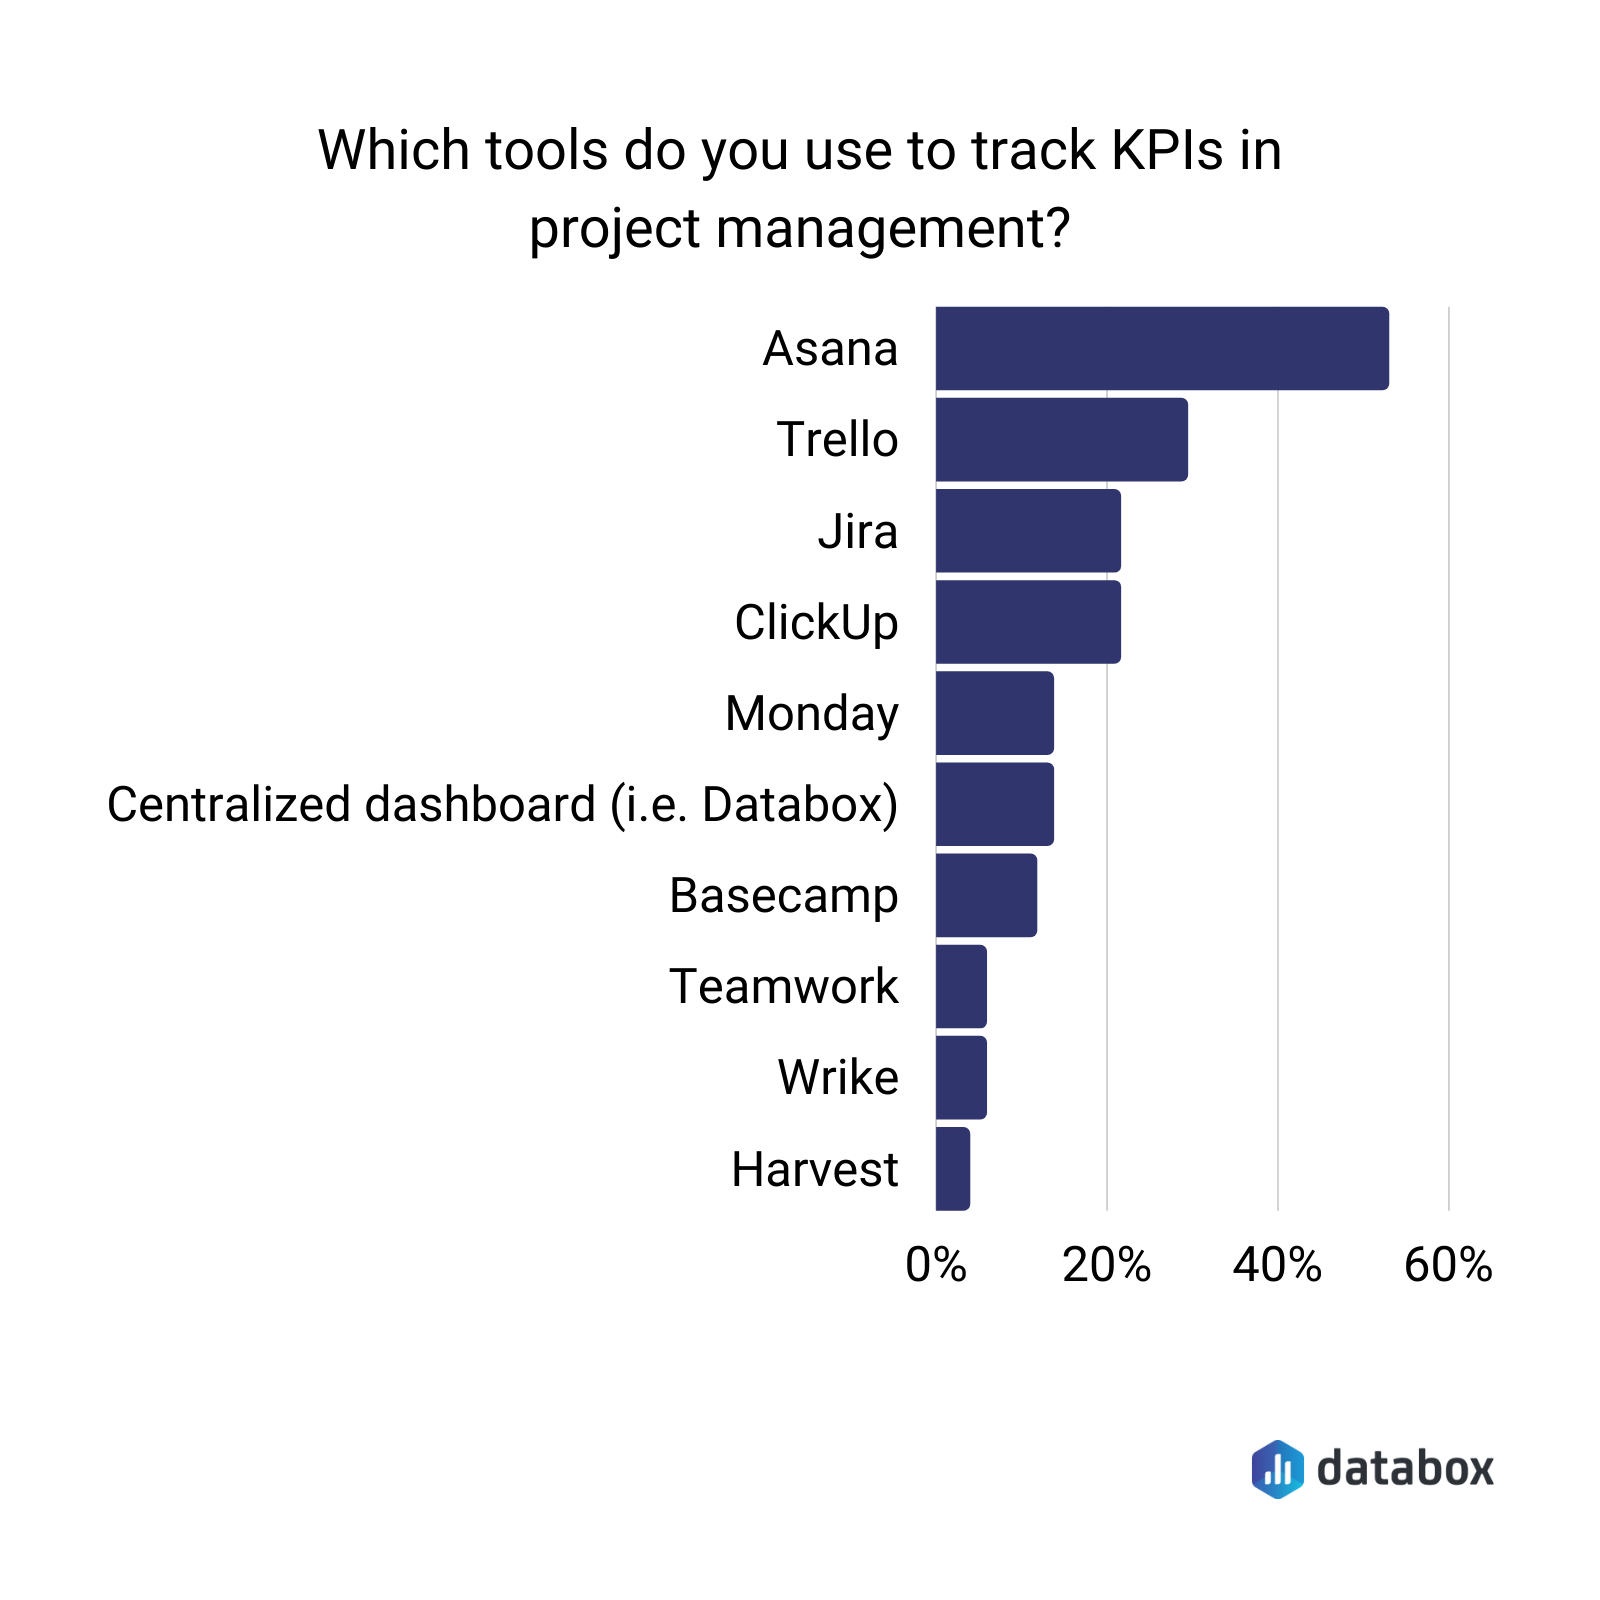 which tools do you use to track kpis in project management